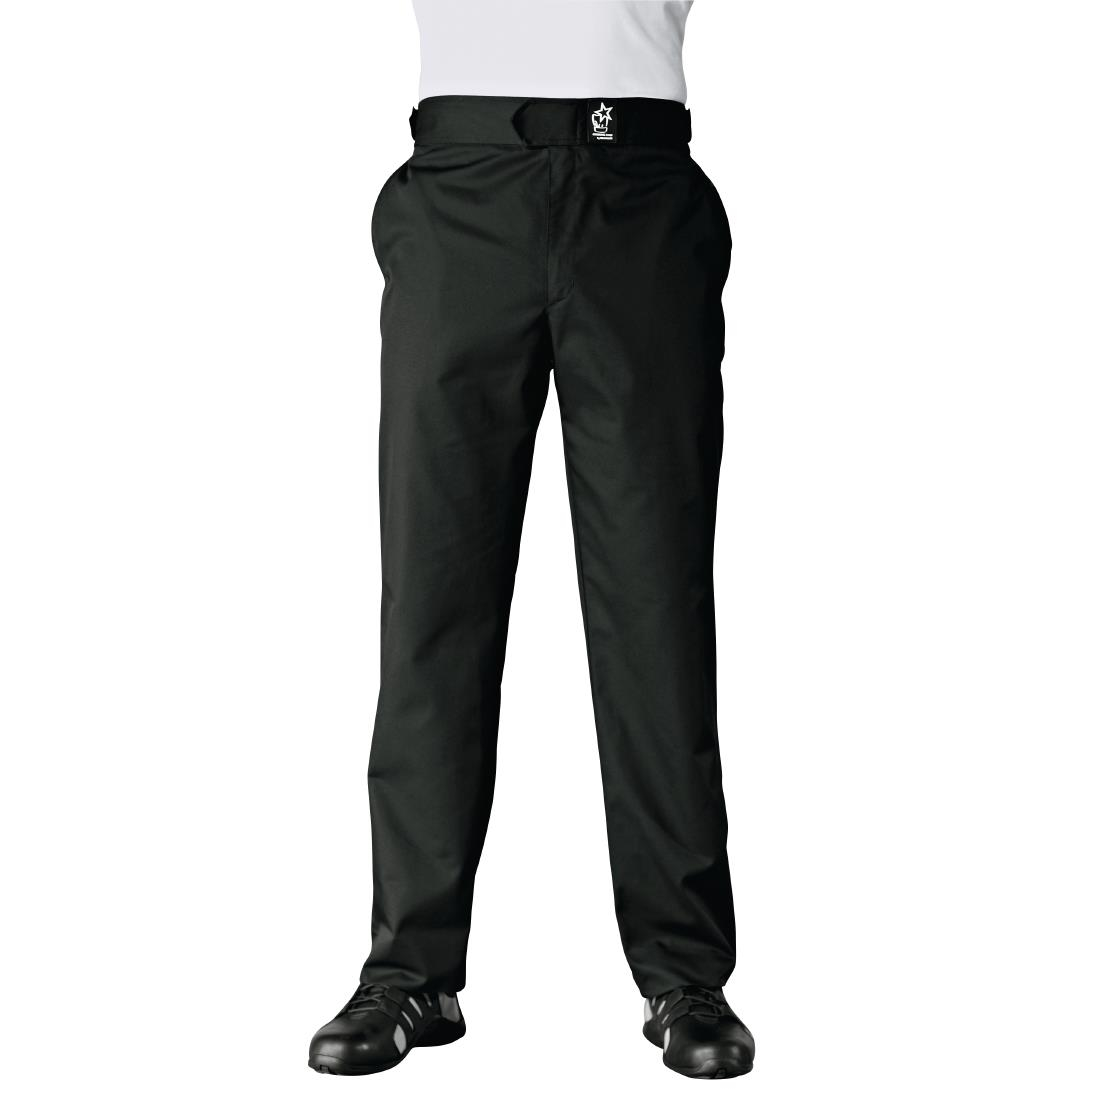 Image of Bragard Denver Mens Trousers Black Size M